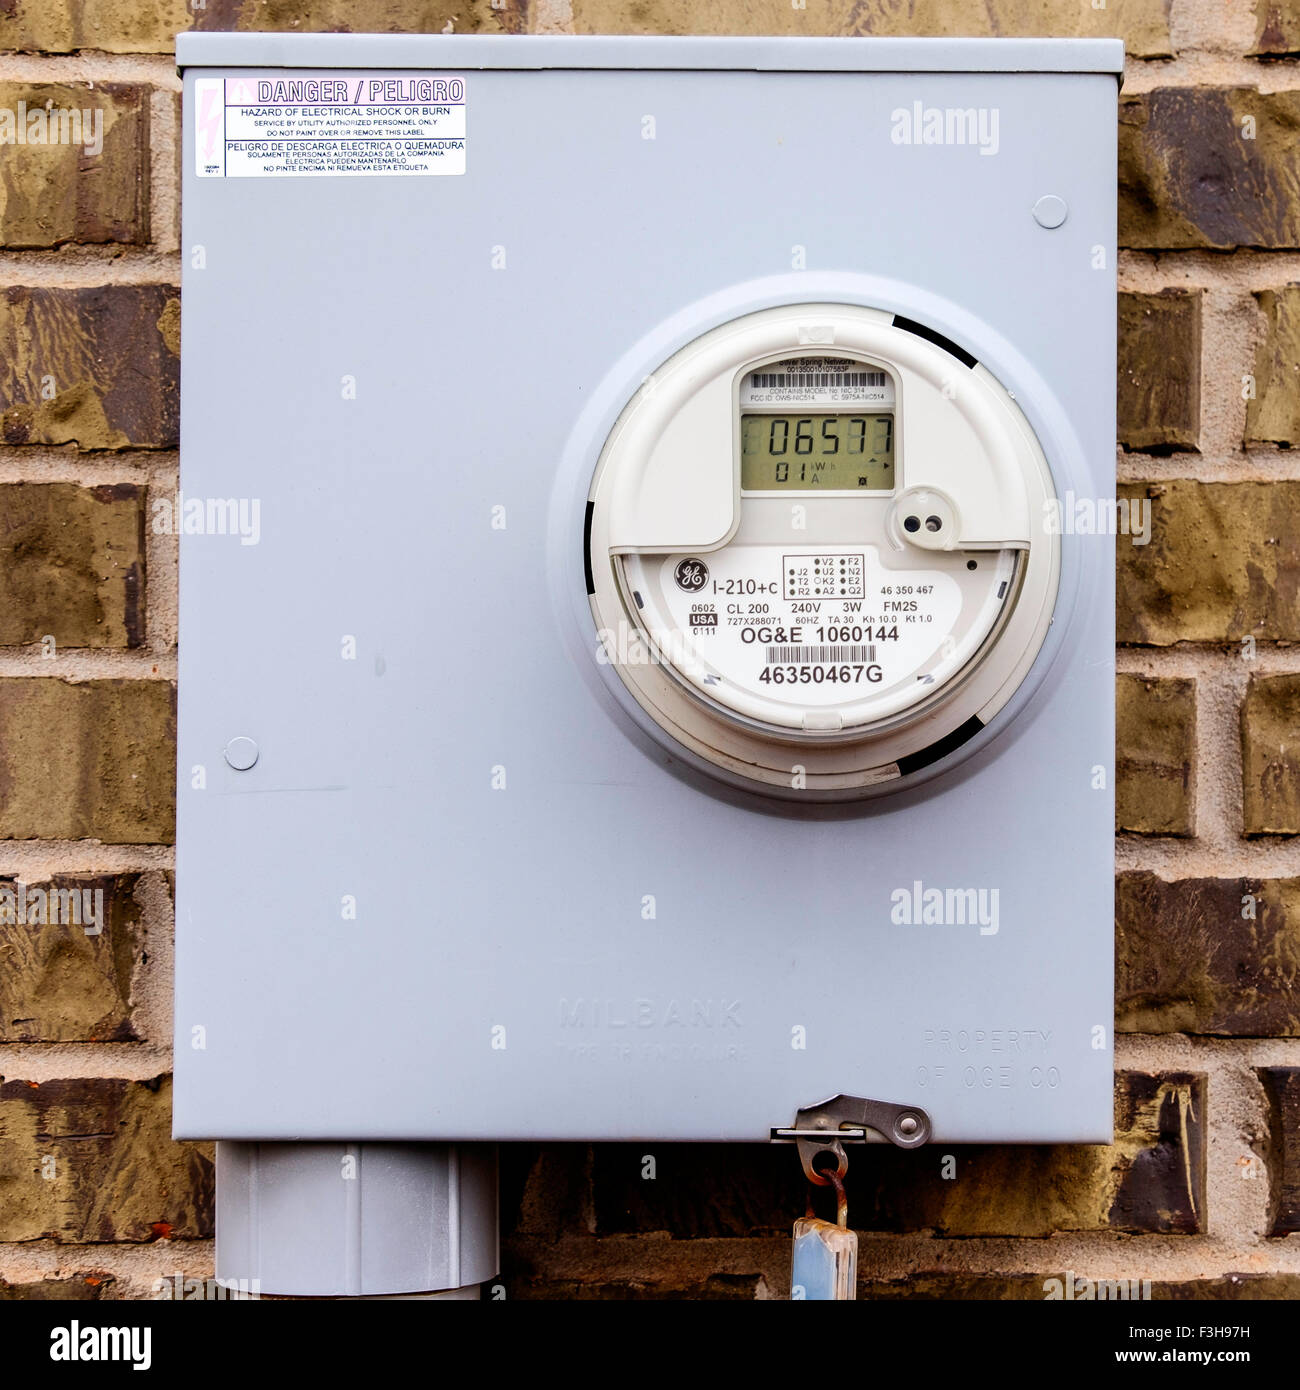 A closeup image of an electric meter in Oklahoma City, Oklahoma, USA. - Stock Image